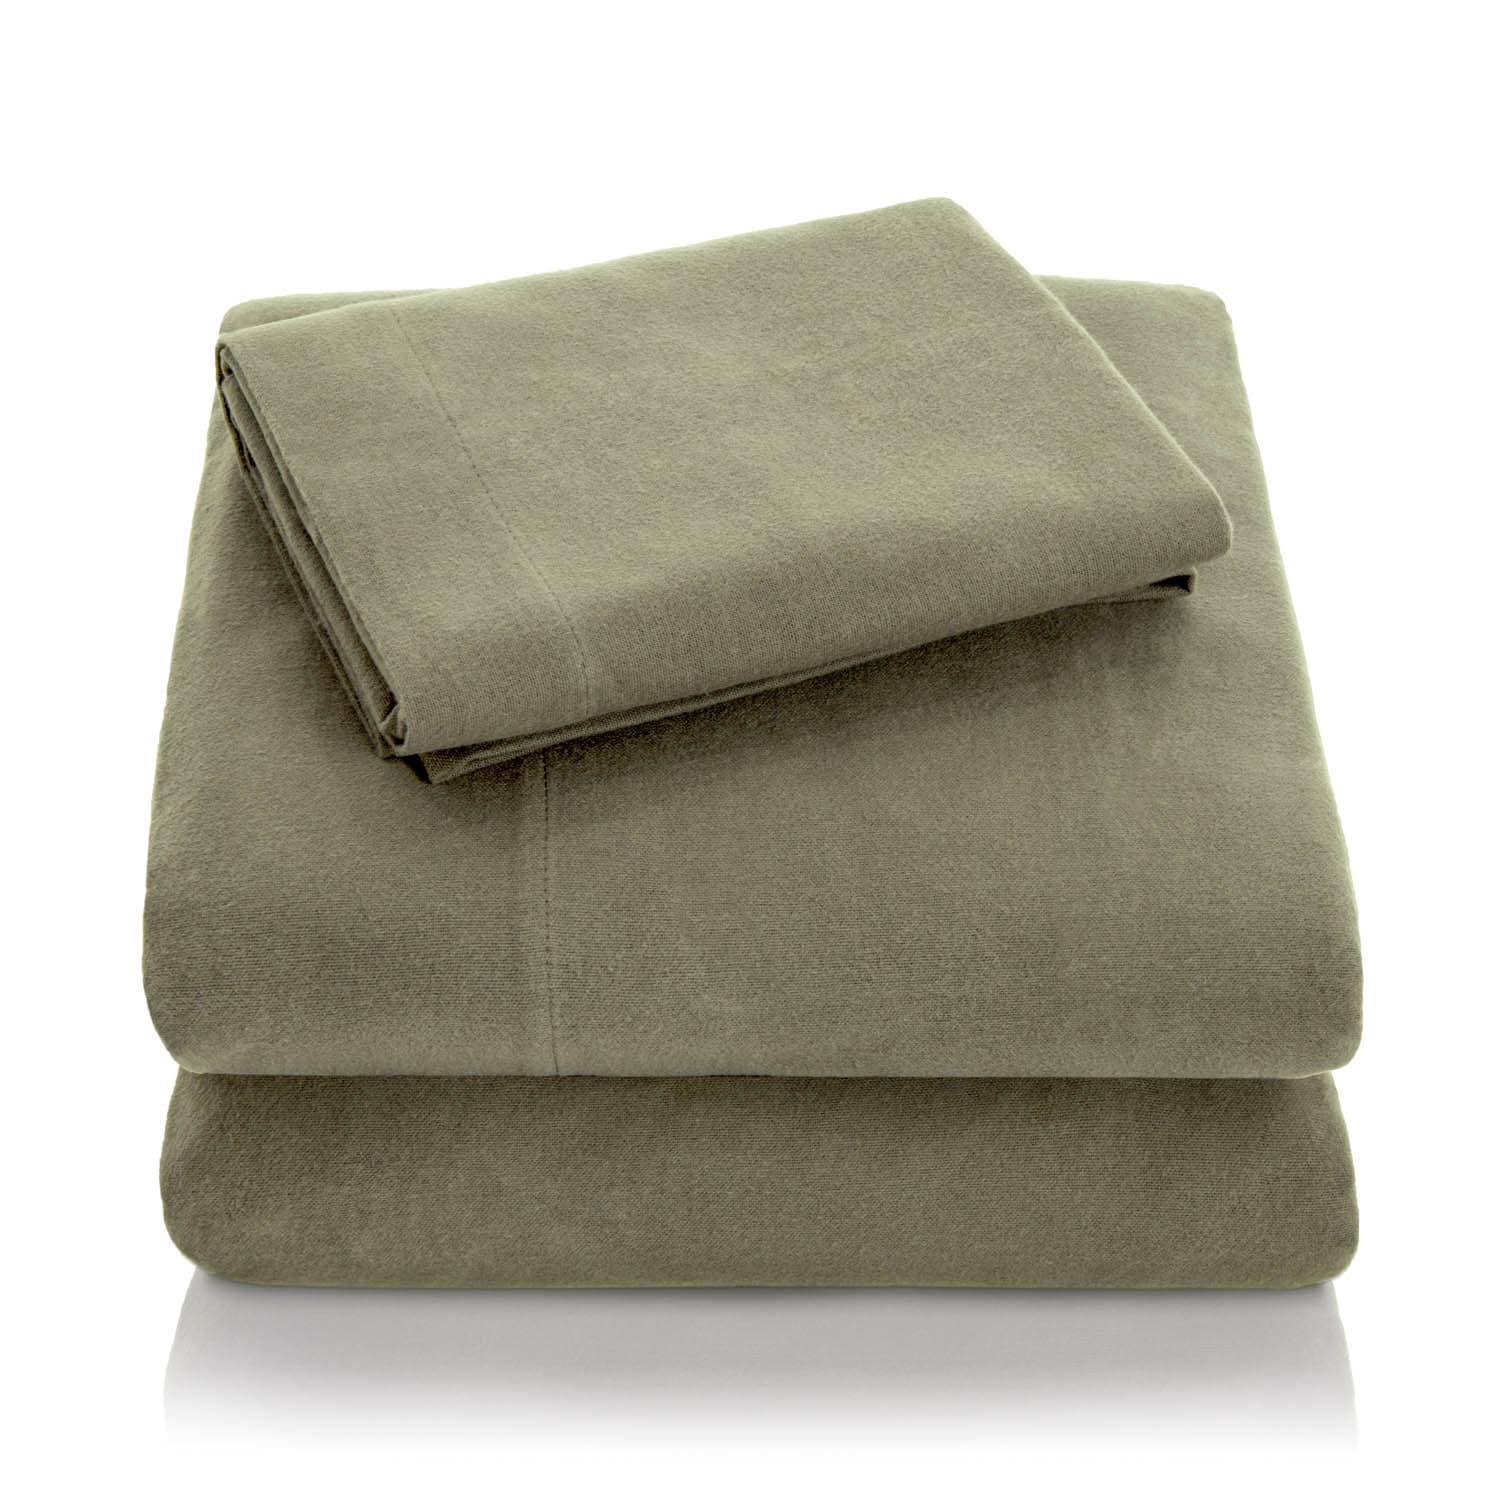 Woven Ultra Soft Portuguese Flannel Bed Sheet Set Overstock 10704396